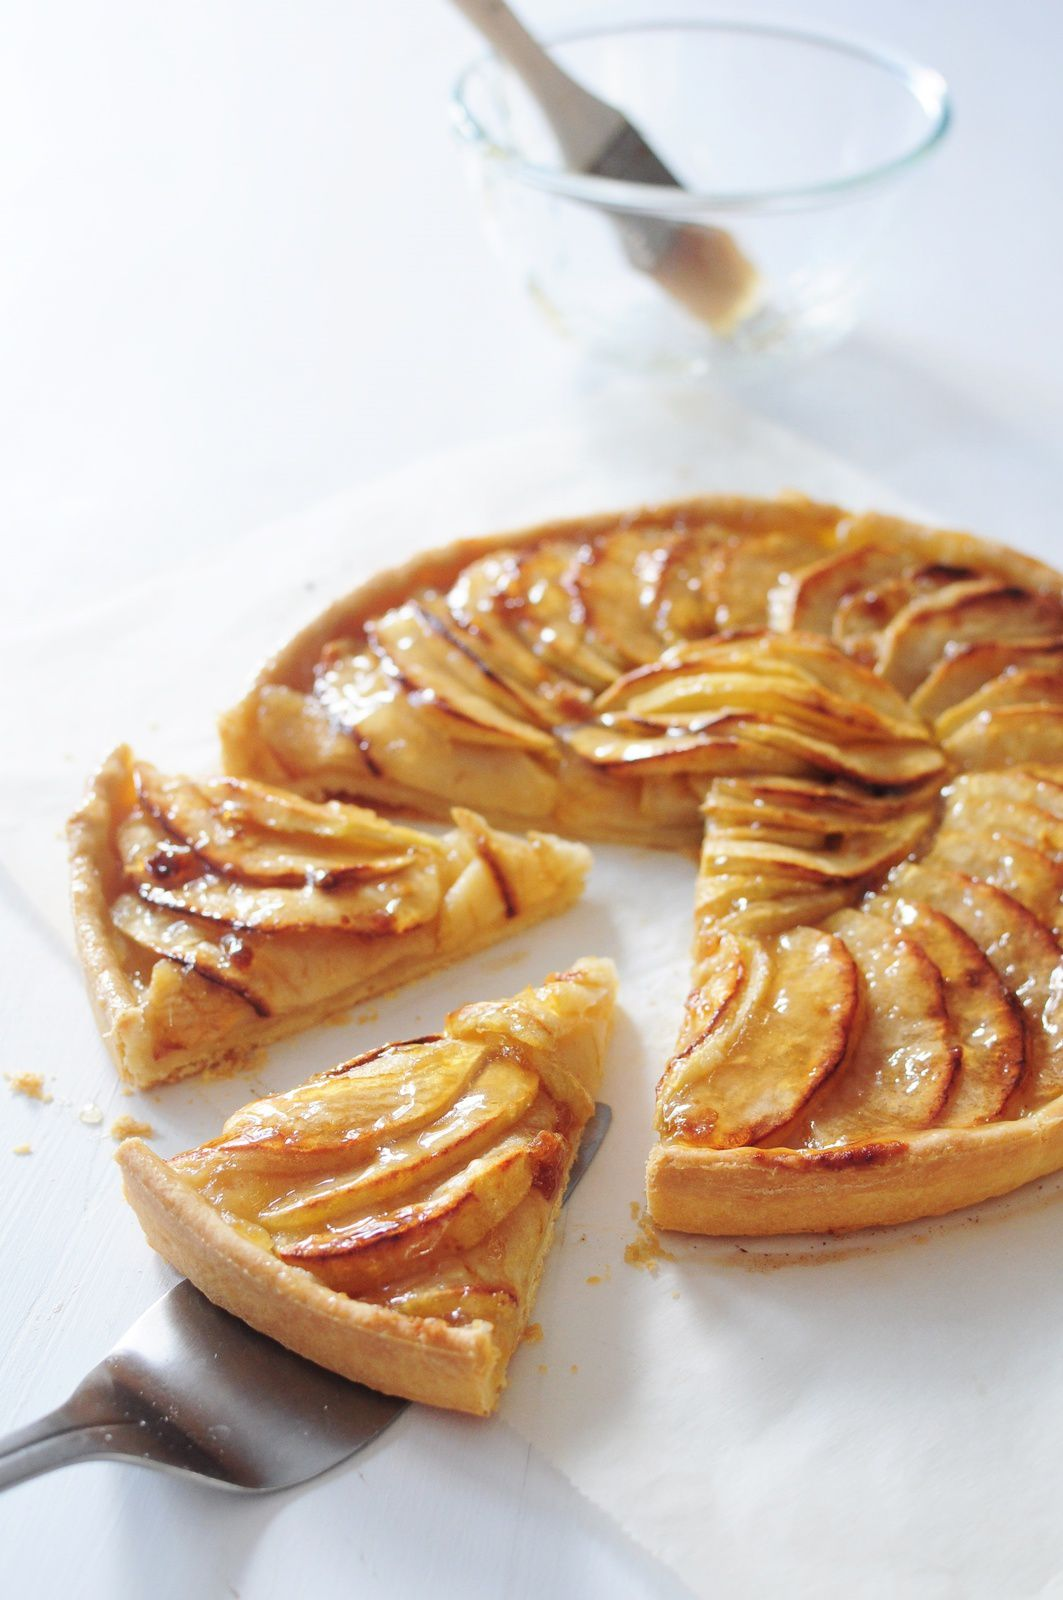 tarte aux pommes cap blog de cuisine cr ative recettes popotte de manue. Black Bedroom Furniture Sets. Home Design Ideas